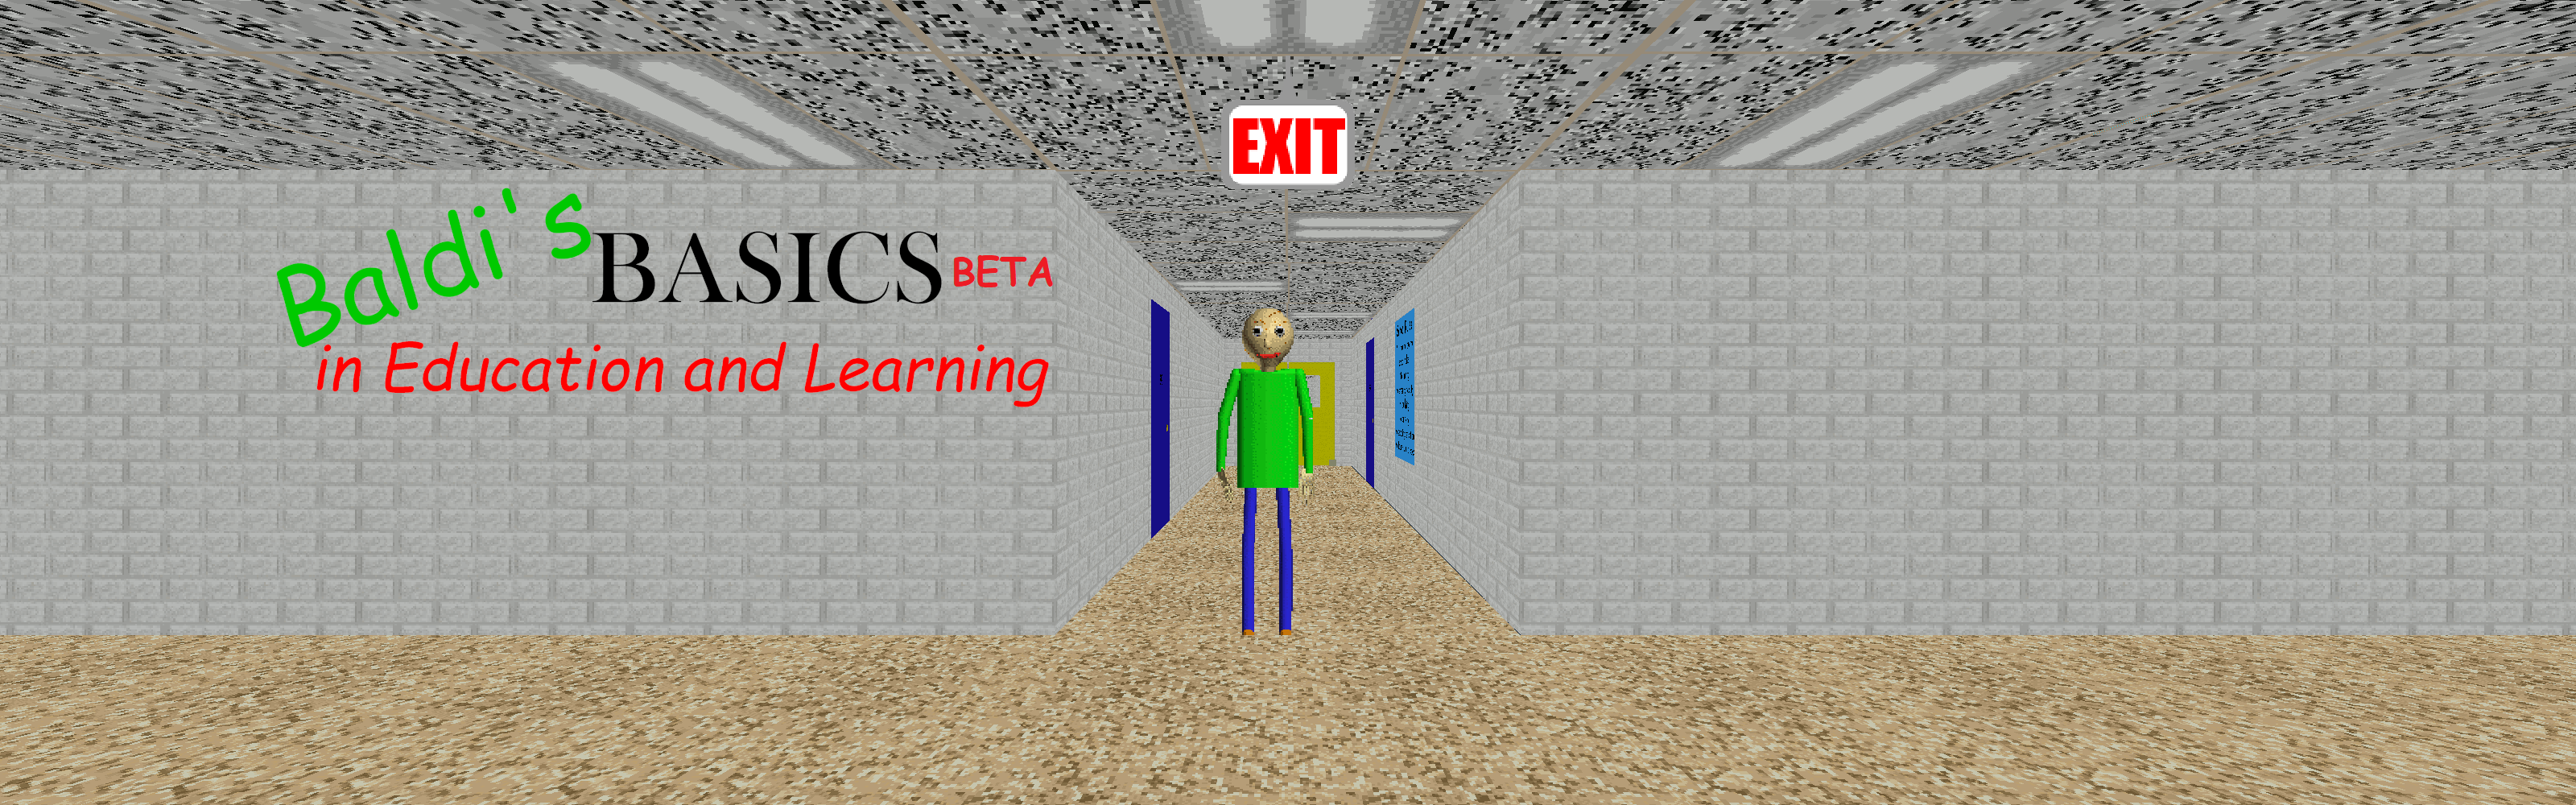 Baldi Basics Beta In Education And Learning